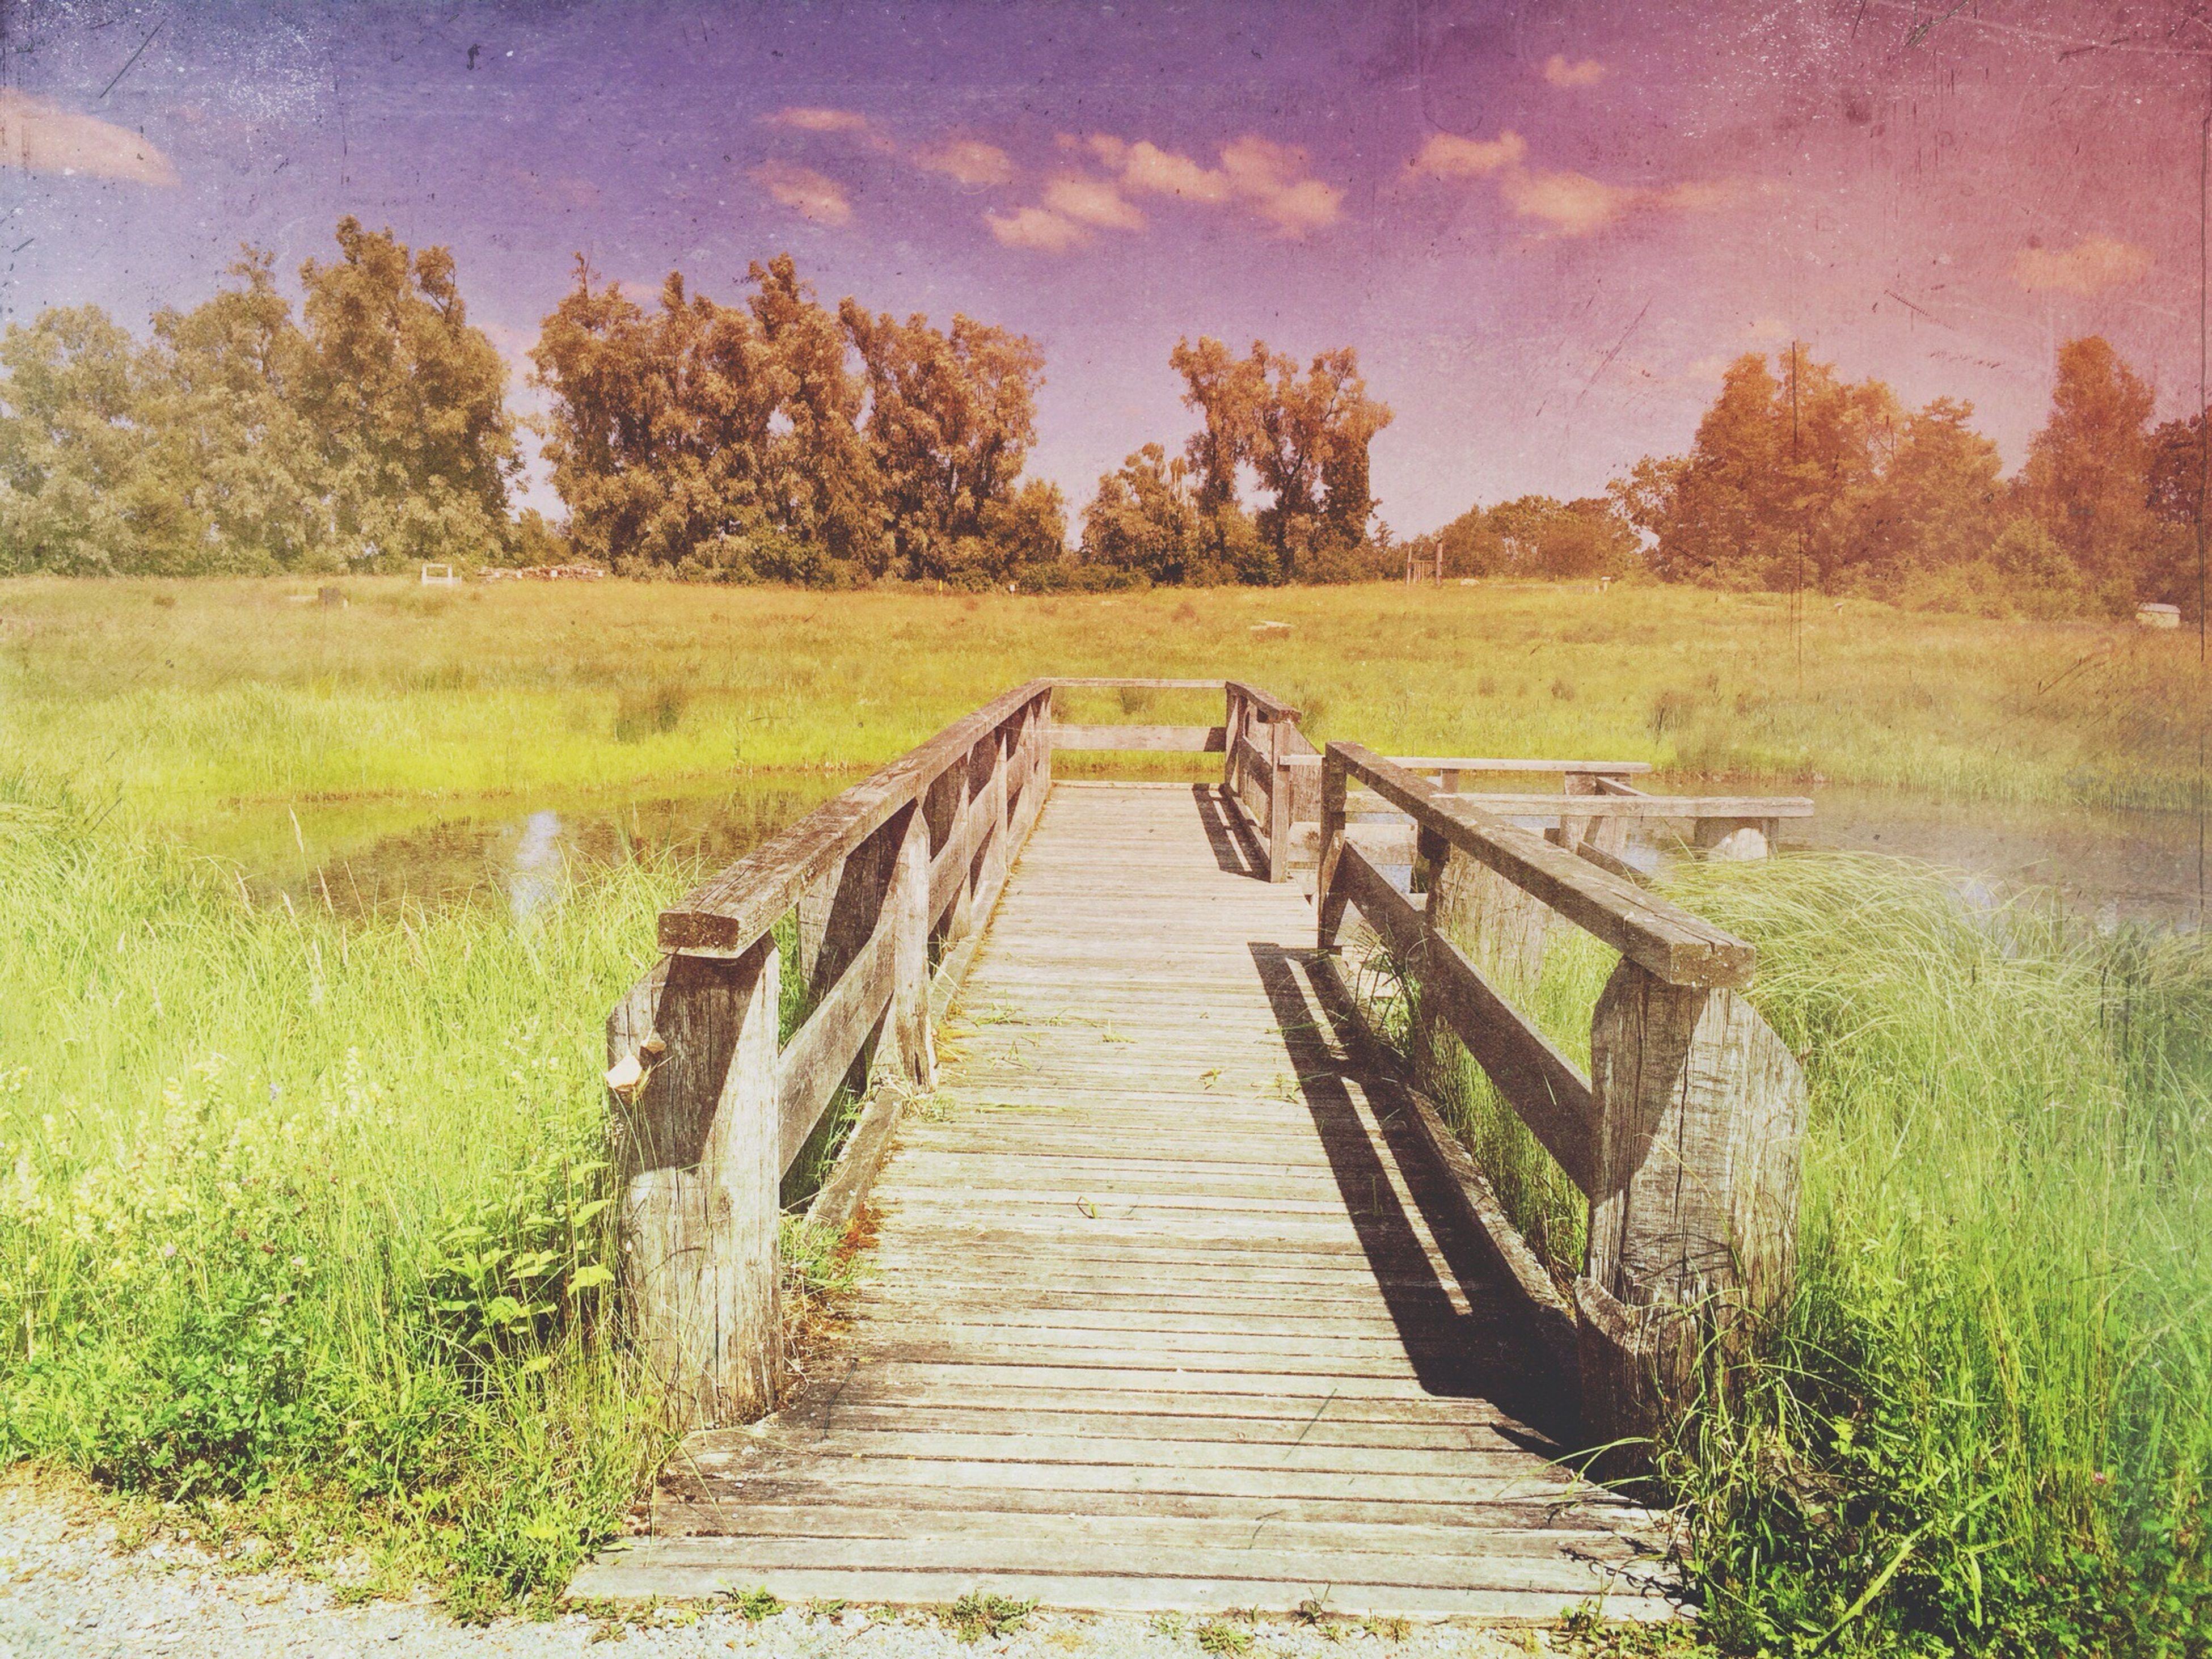 the way forward, grass, boardwalk, tranquility, tree, wood - material, tranquil scene, sky, diminishing perspective, railing, nature, footbridge, scenics, growth, water, beauty in nature, wooden, landscape, wood, plant